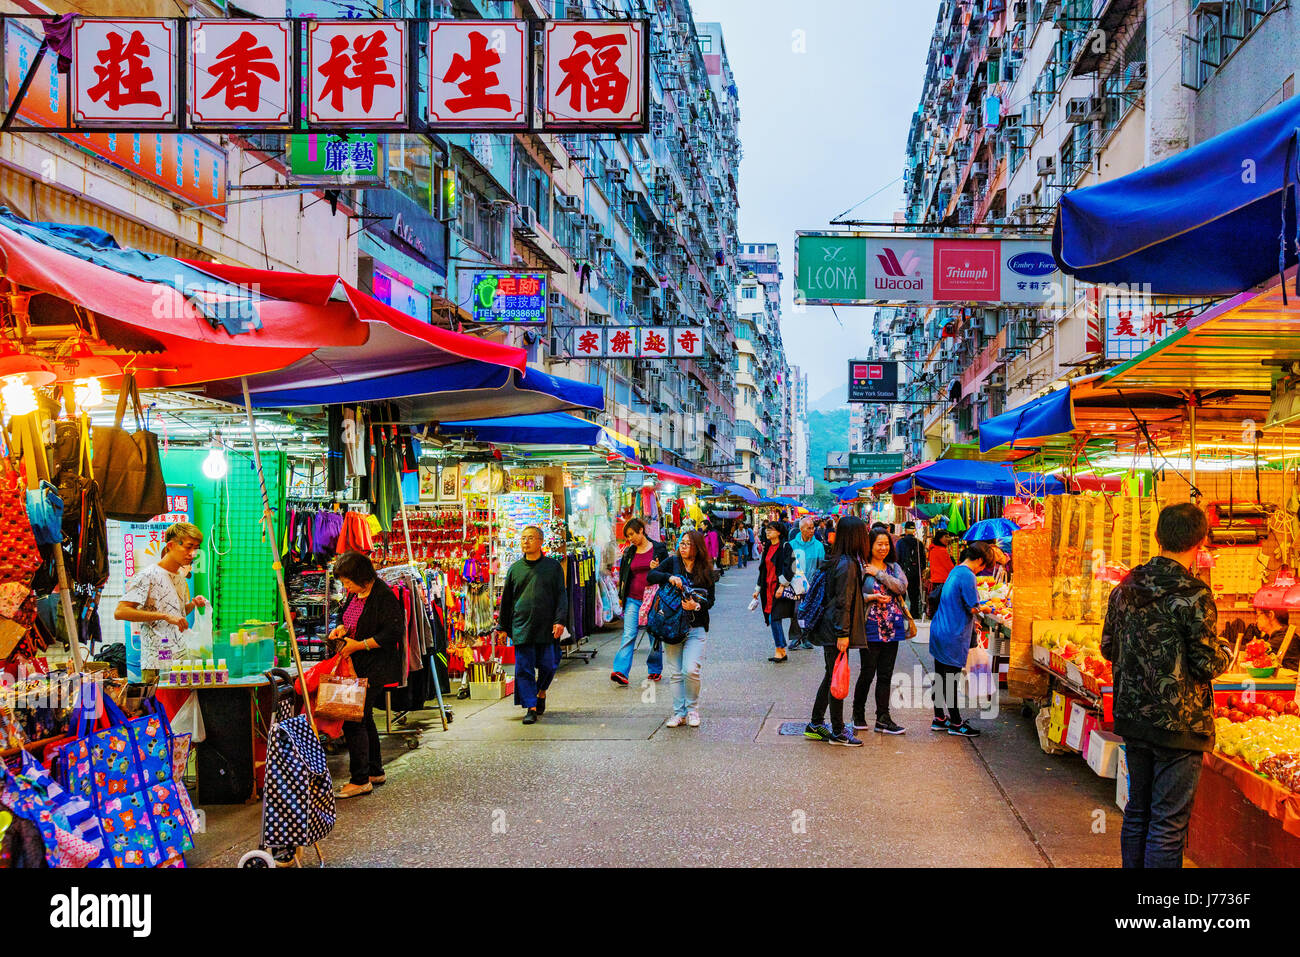 HONG KONG, CHINA - APRIL 24: This is Fa Yuen street market a popular local market in Hong Kong which many tourists - Stock Image